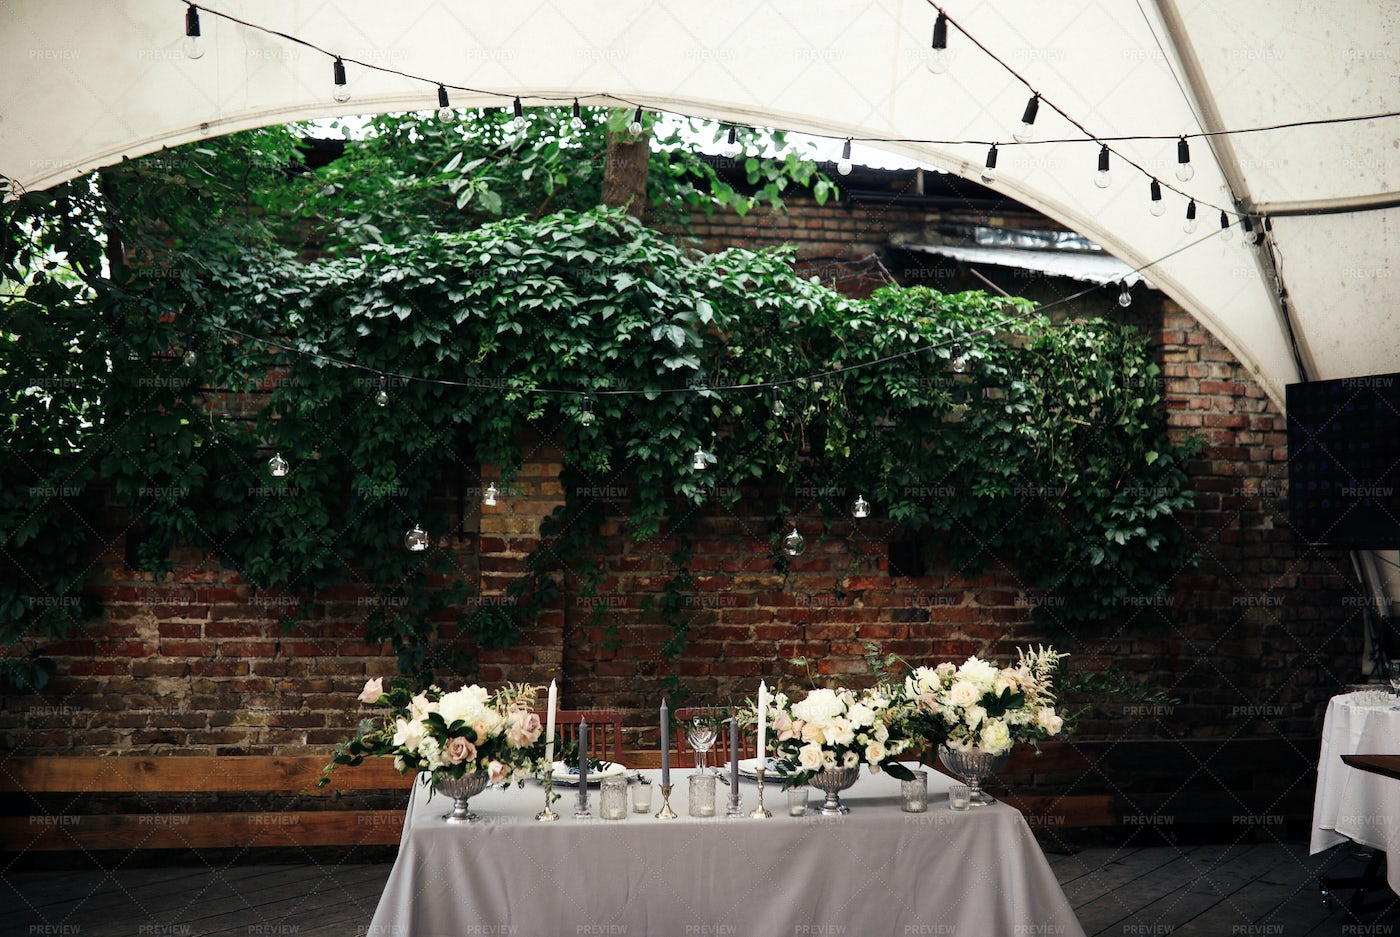 Wedding Table With Flowers: Stock Photos